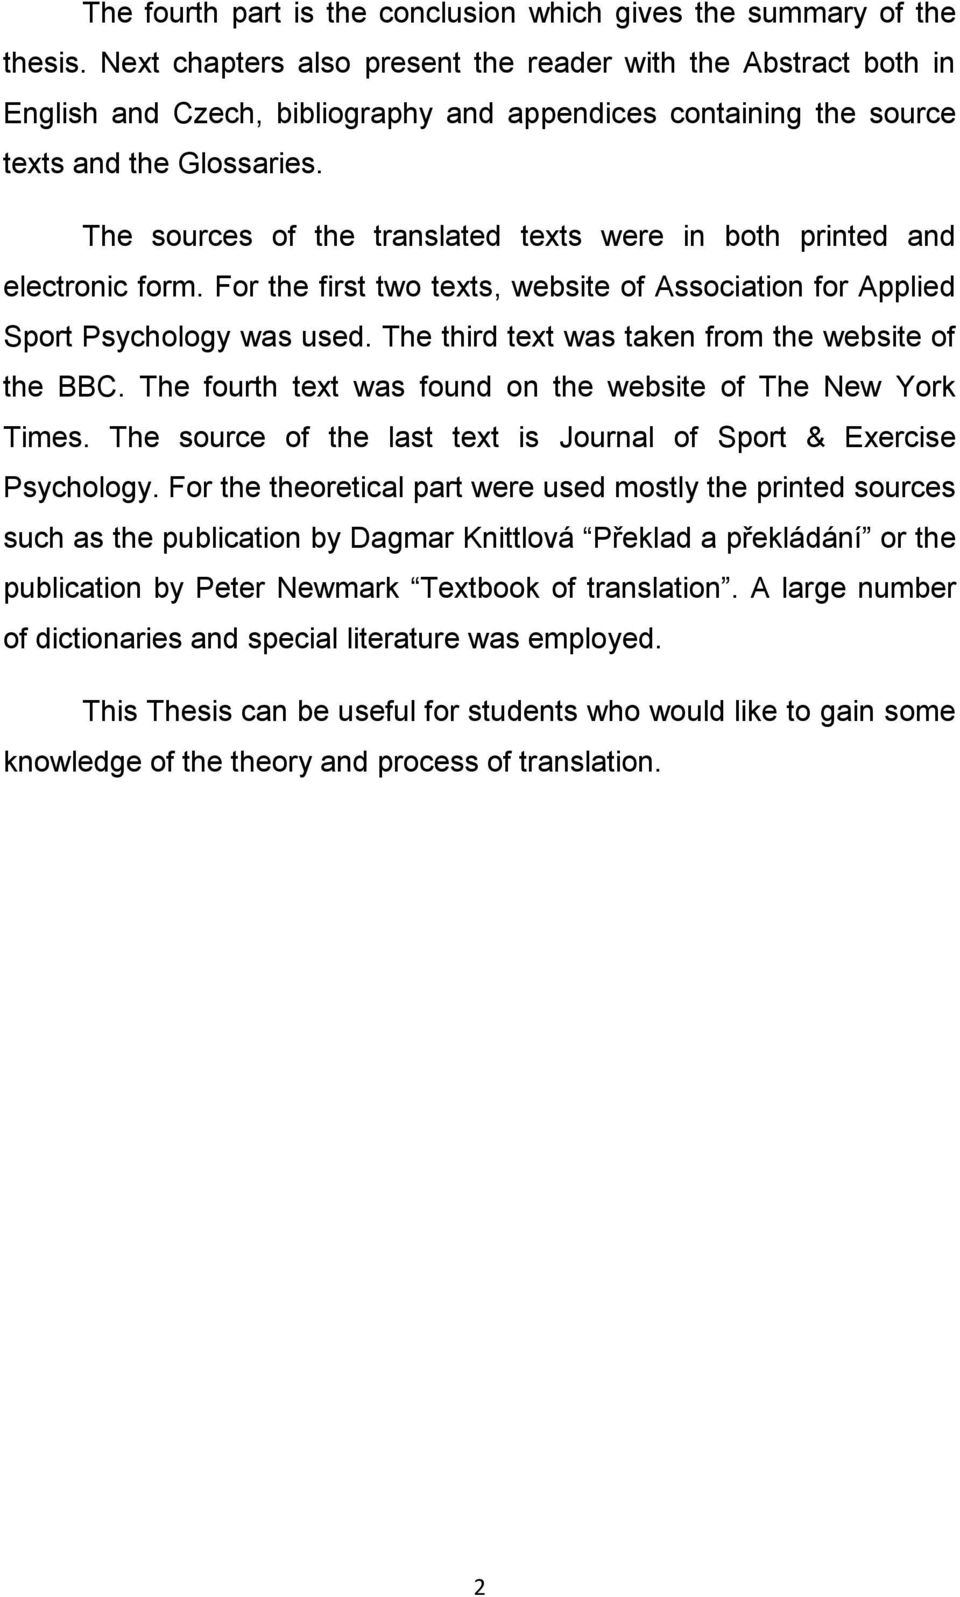 The sources of the translated texts were in both printed and electronic form. For the first two texts, website of Association for Applied Sport Psychology was used.